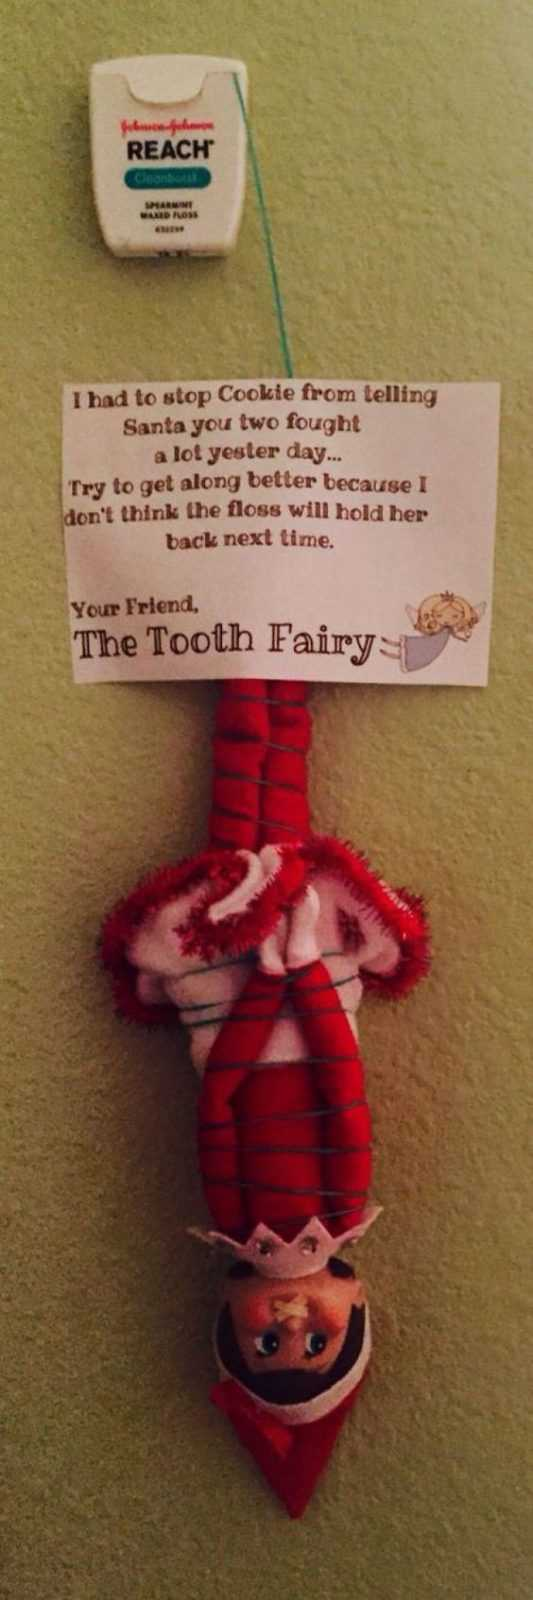 Elf On the Shelf funny - elf tied up by tooth fairy